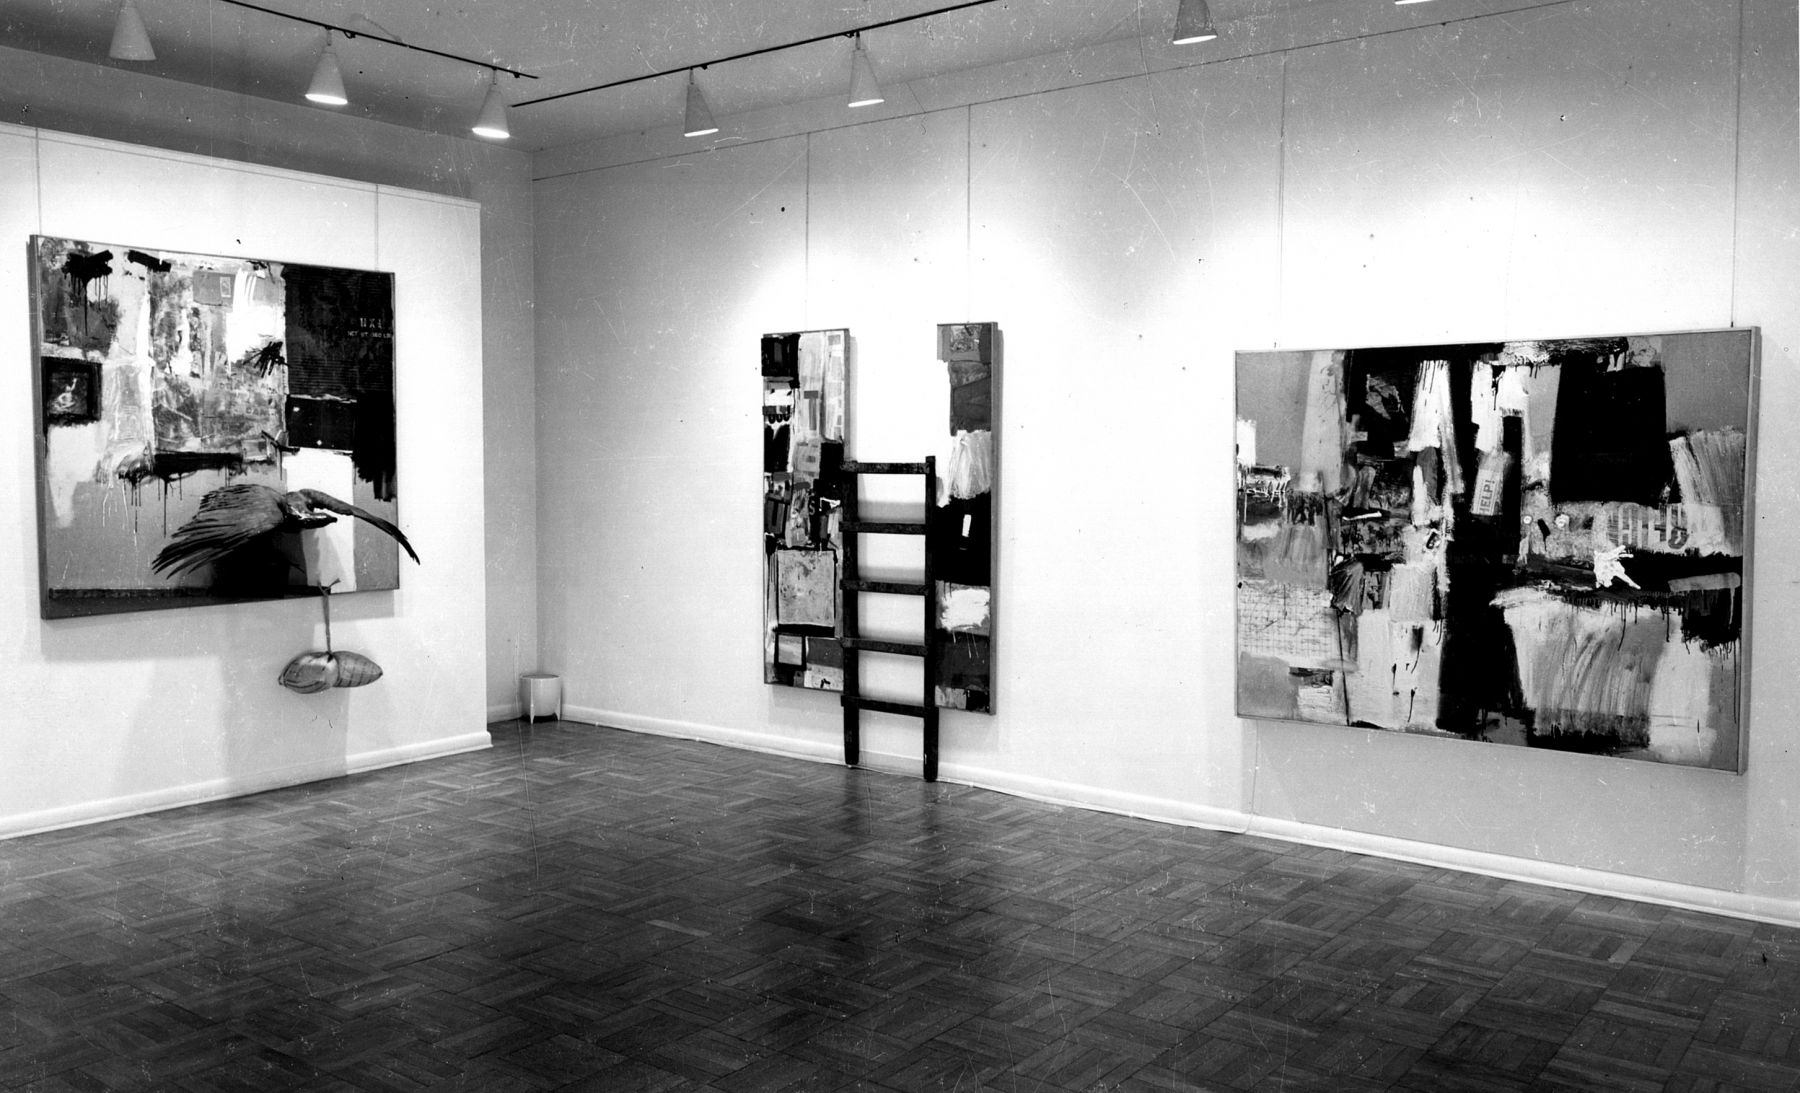 Installation view, Robert Rauschenberg, 4 EAST 77.